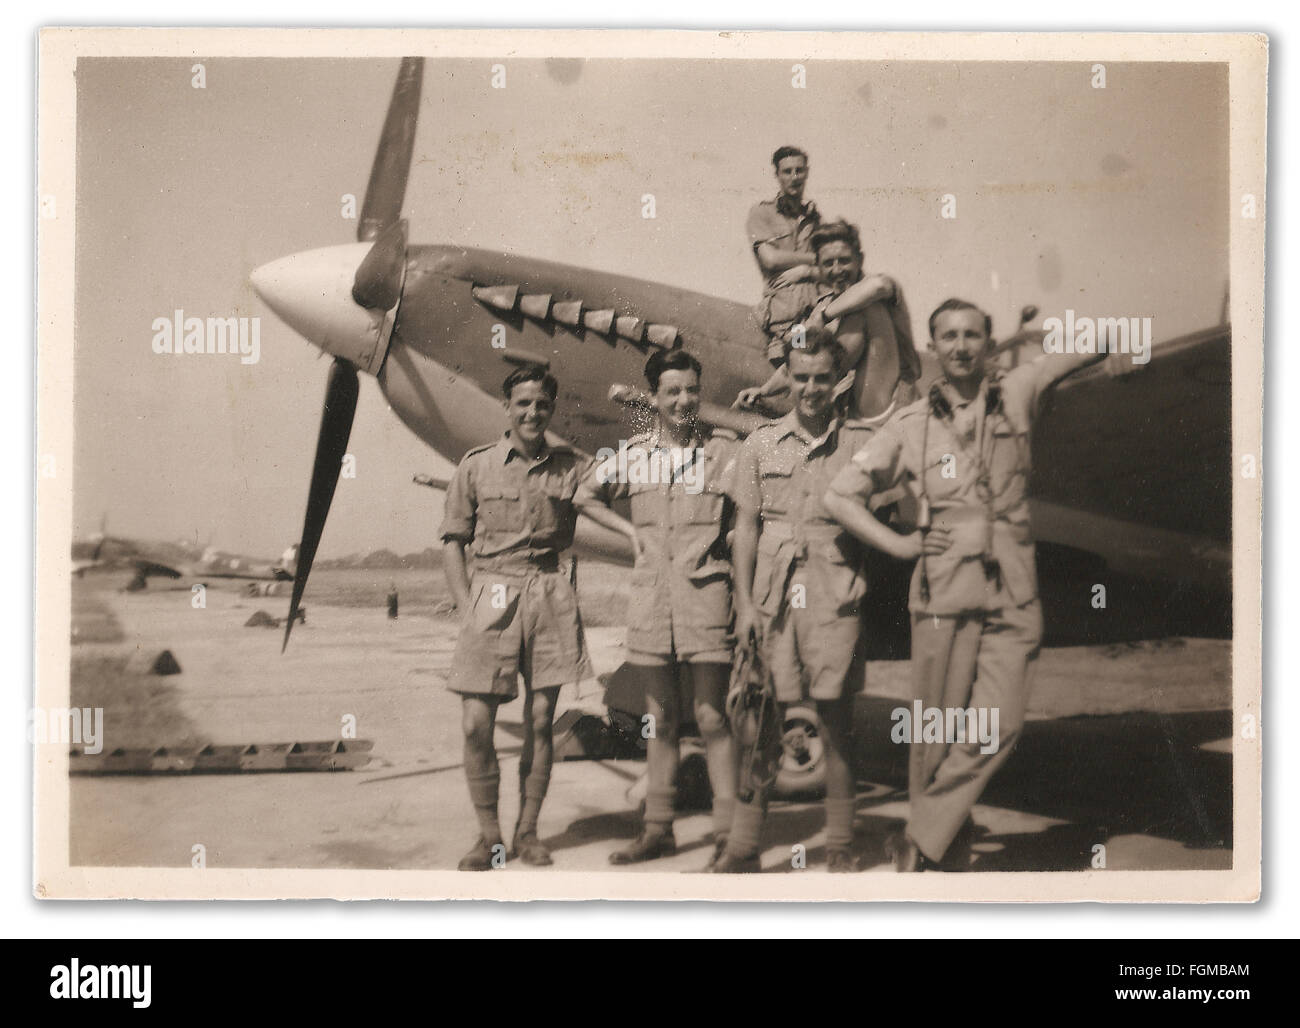 Airman surrounding a Supermarine Spitfire VIII in post-war India - Stock Image